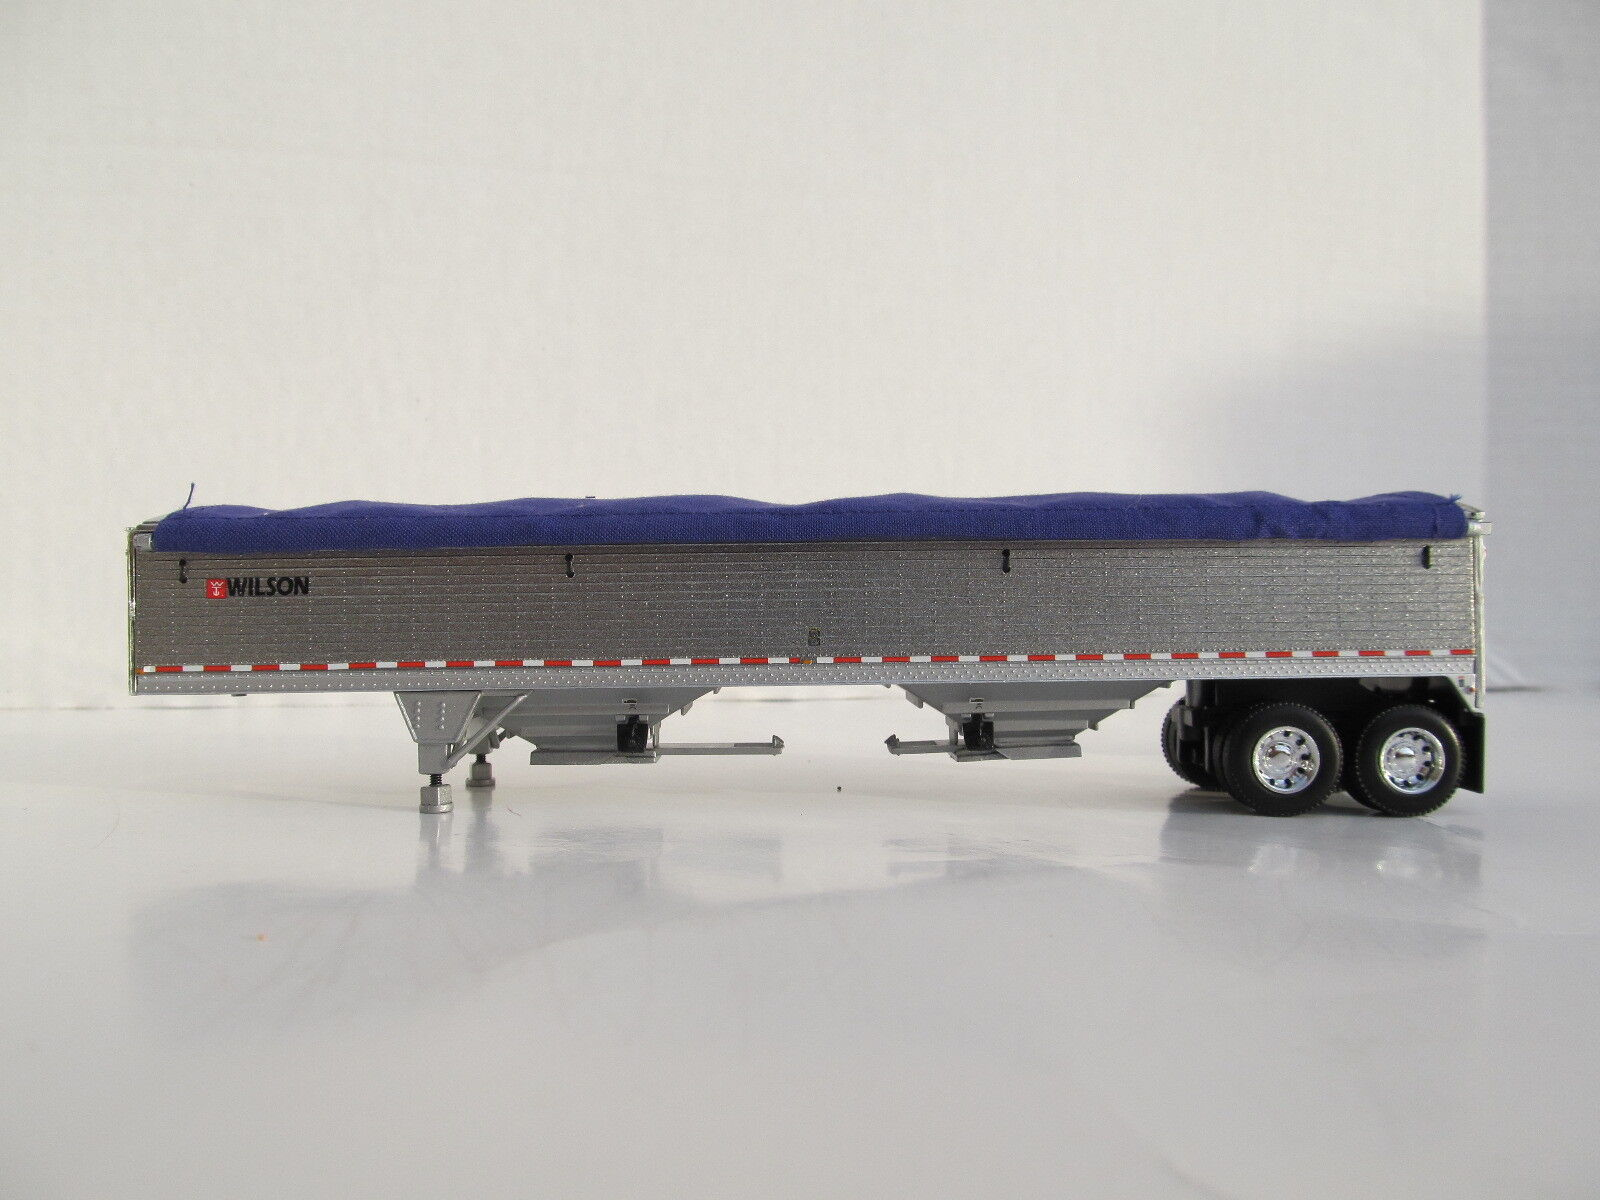 DCP 1/64 SCALE WILSON GRAIN TRAILER PEWTER WITH PURPLE TARP AND SILVER HOPPERS